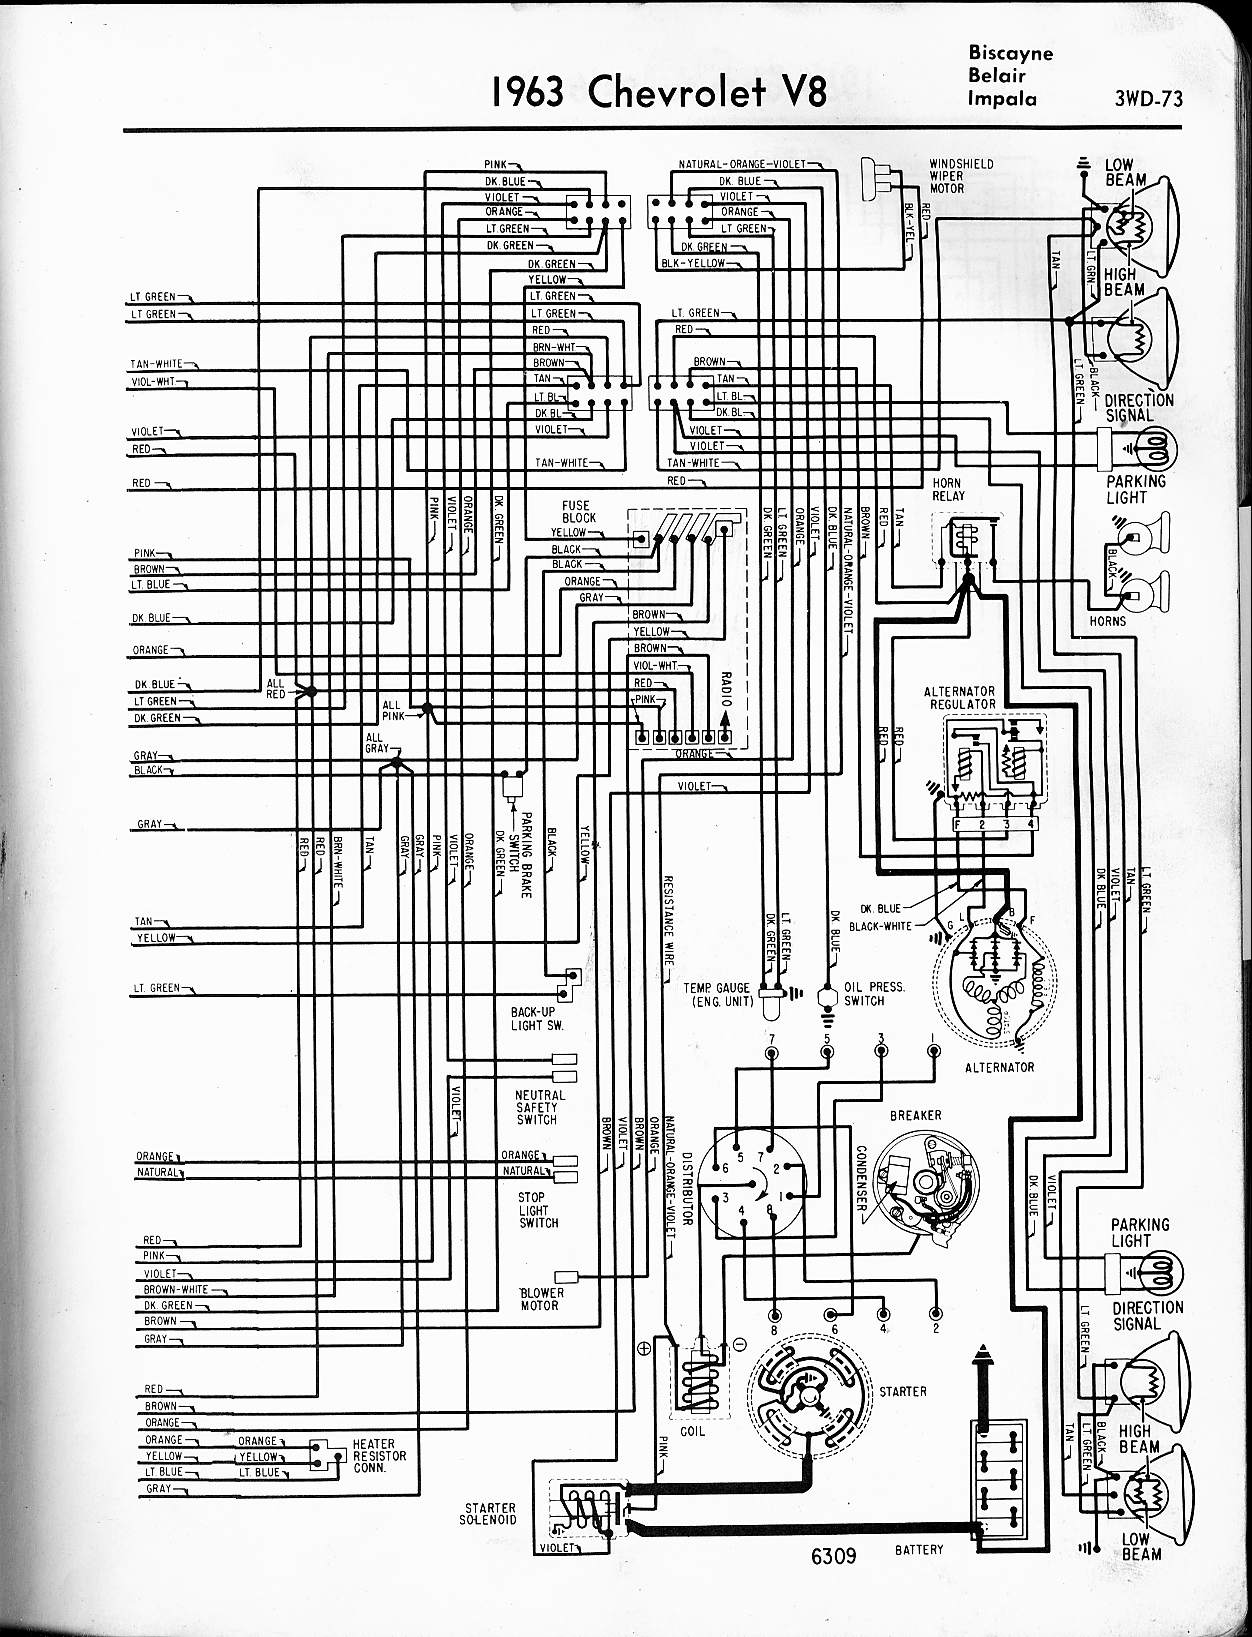 hight resolution of 57 65 chevy wiring diagrams 1981 camaro wiring 1963 v8 biscayne belair impala right